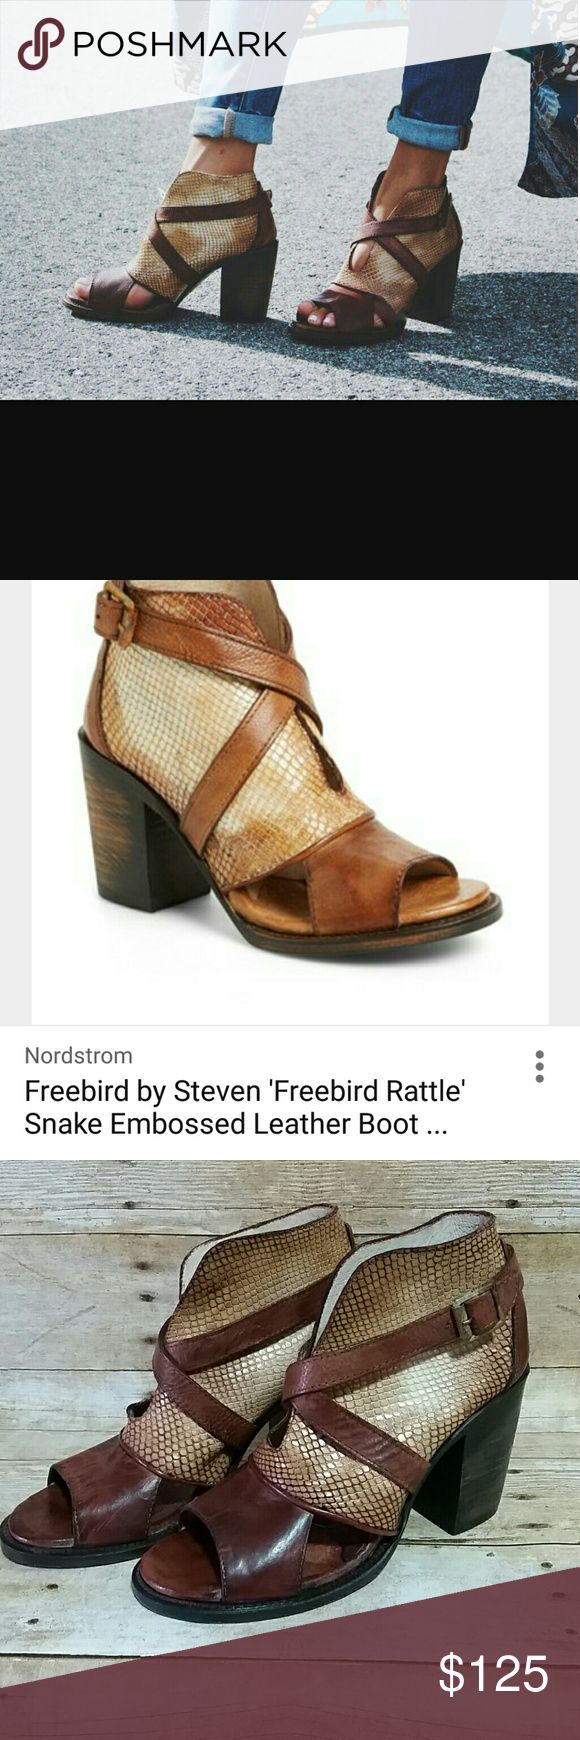 Freebird by Steven Freebird by Steven Rattles Snake Embossed Peep Toe Booties Leather upper, lining and sole. Made in Mexico.  3 1/4 heel. Has 1 small scuff on strap. Plz see pics. Freebird by Steven Shoes